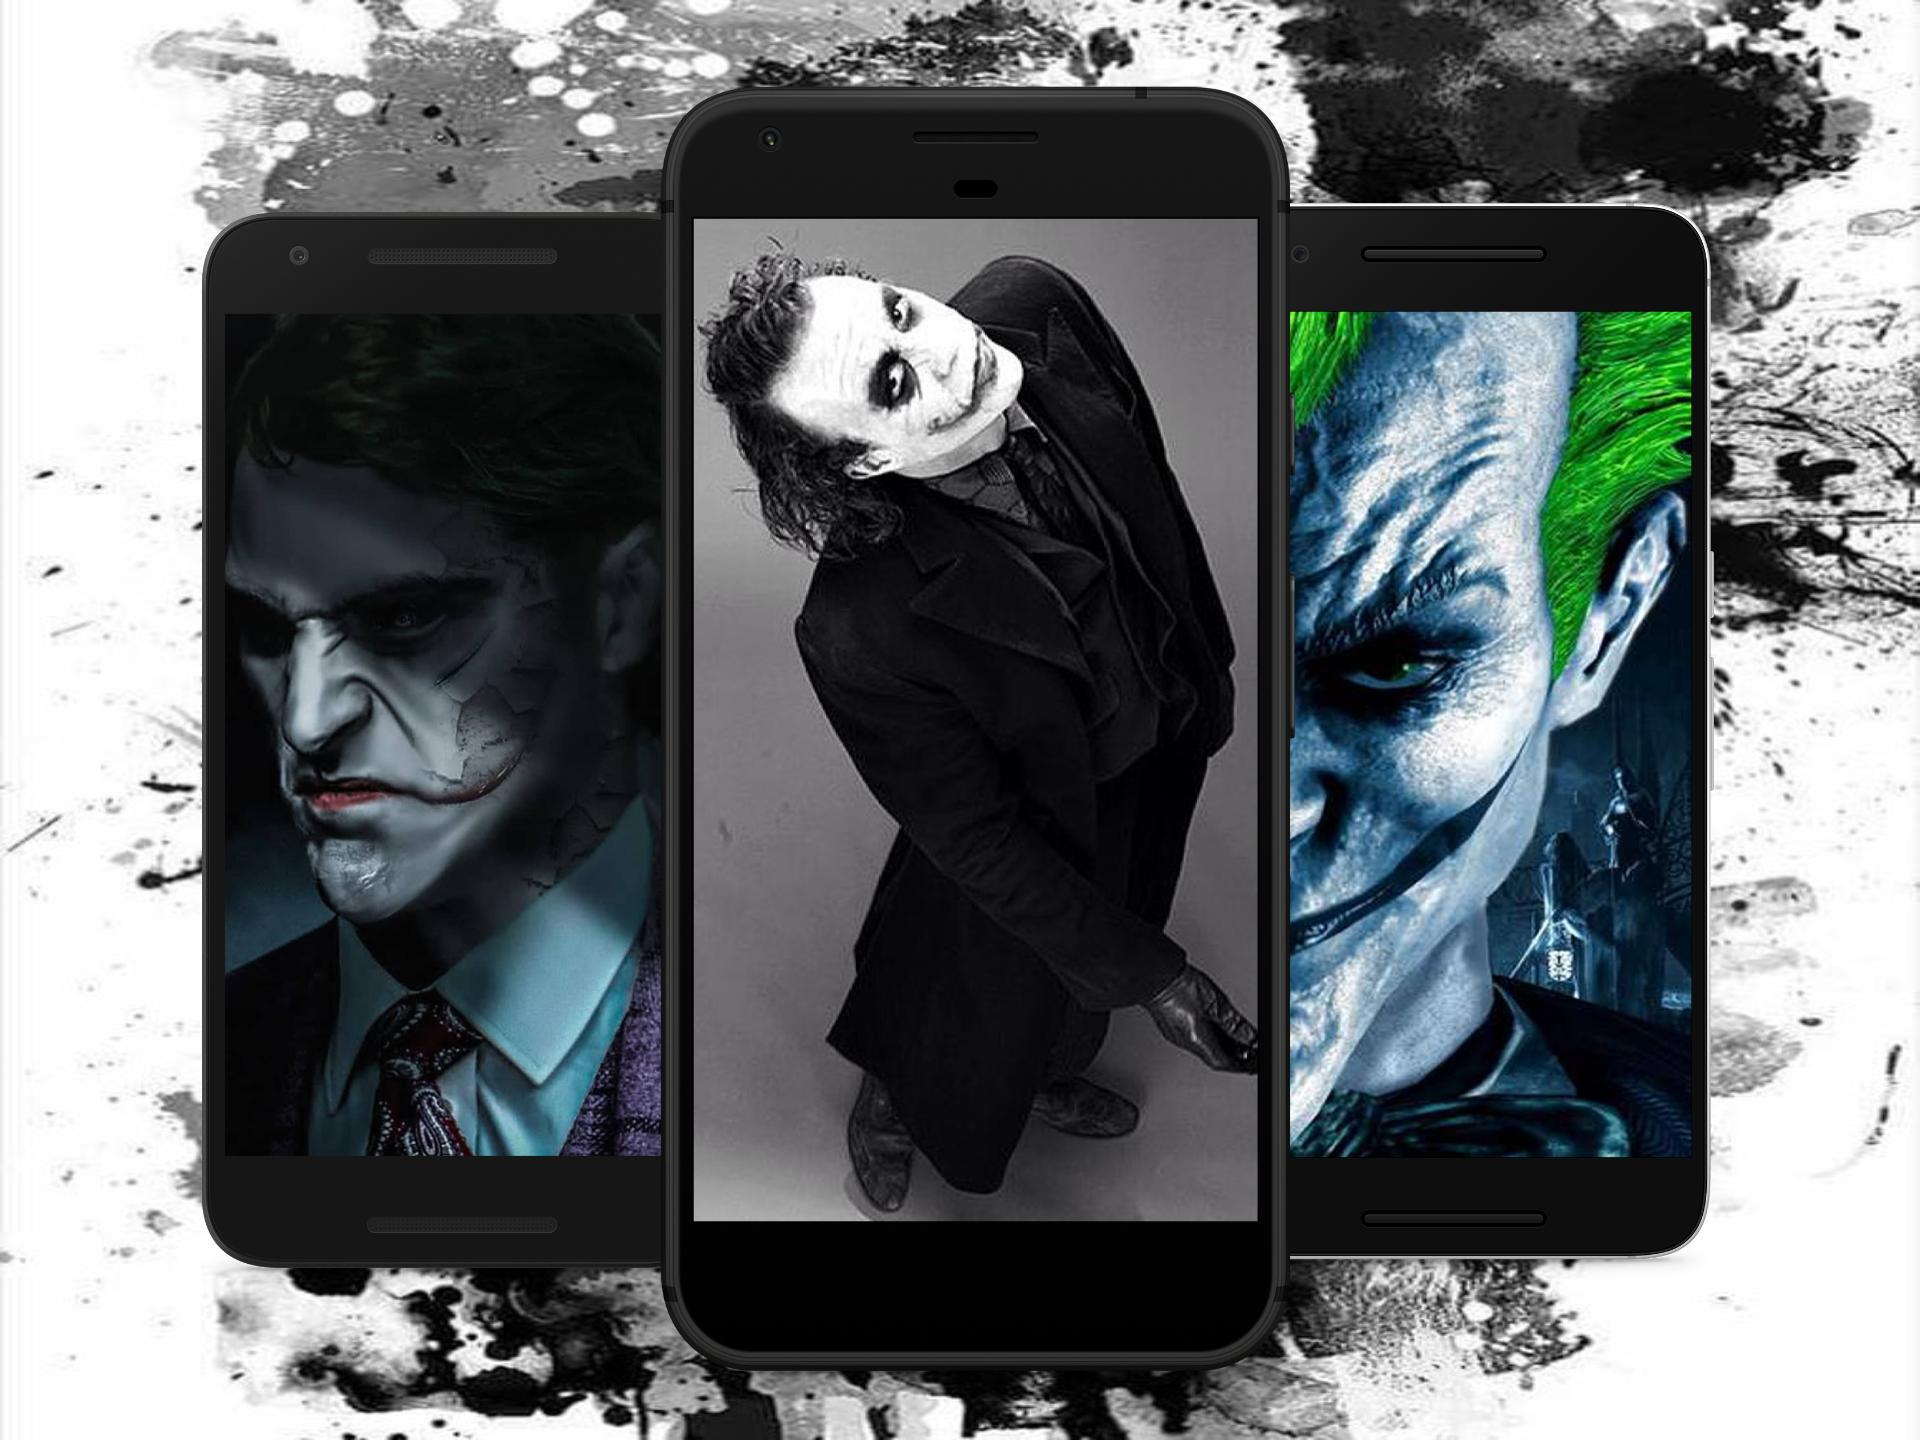 Joker Wallpapers 4k For Android Apk Download